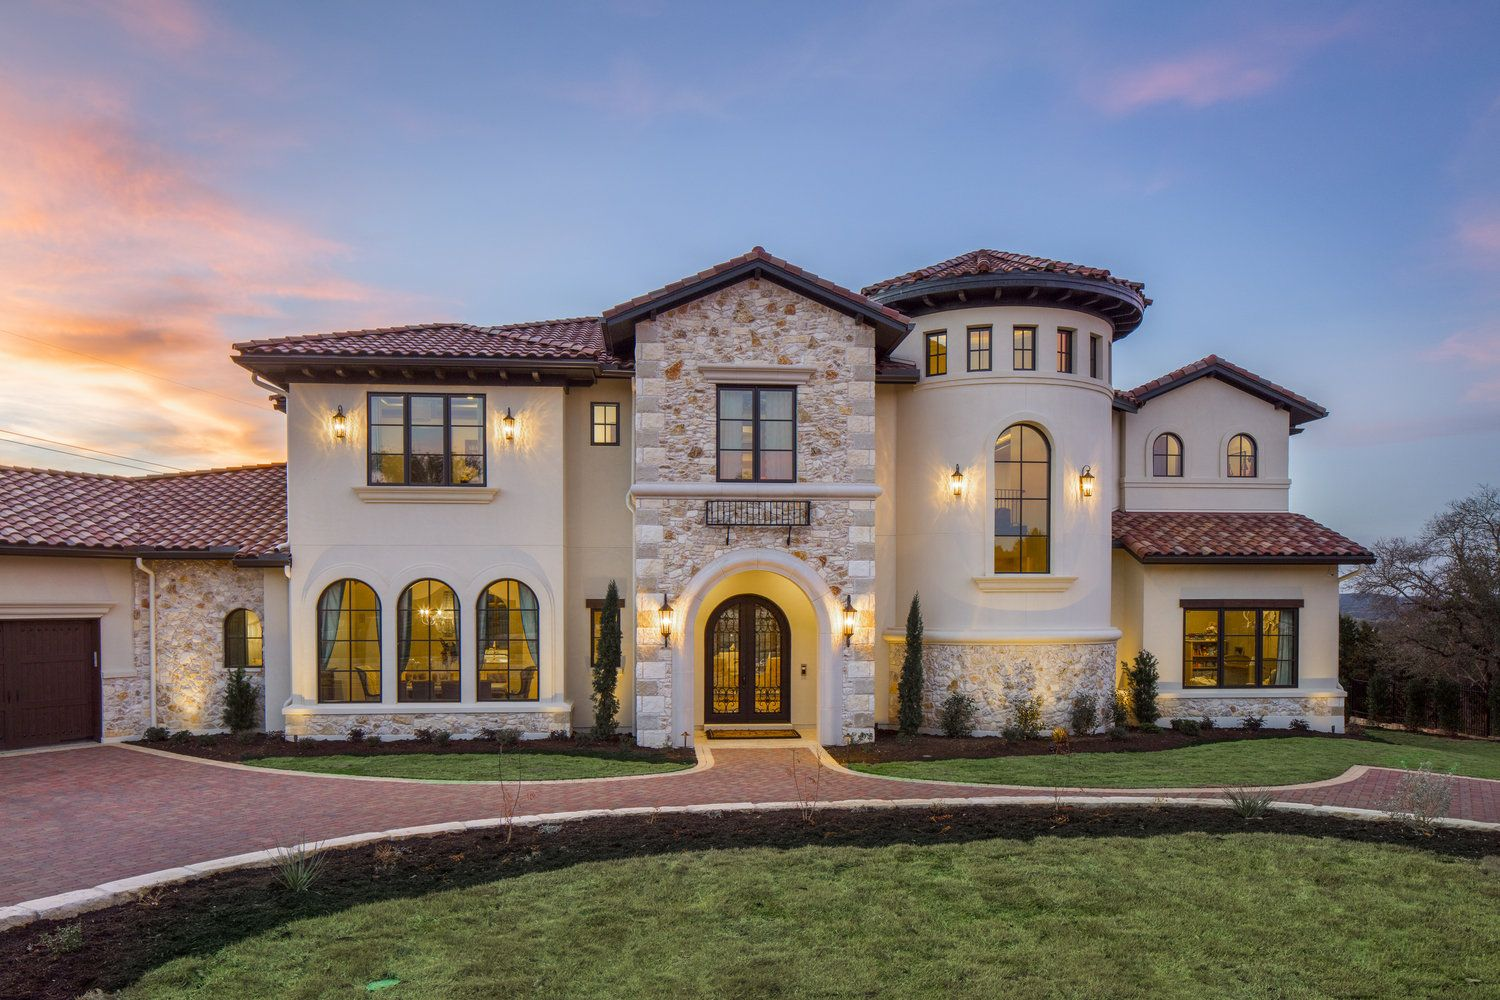 Brookview Lg 56 Jpg Different Architectural Styles Gorgeous Houses